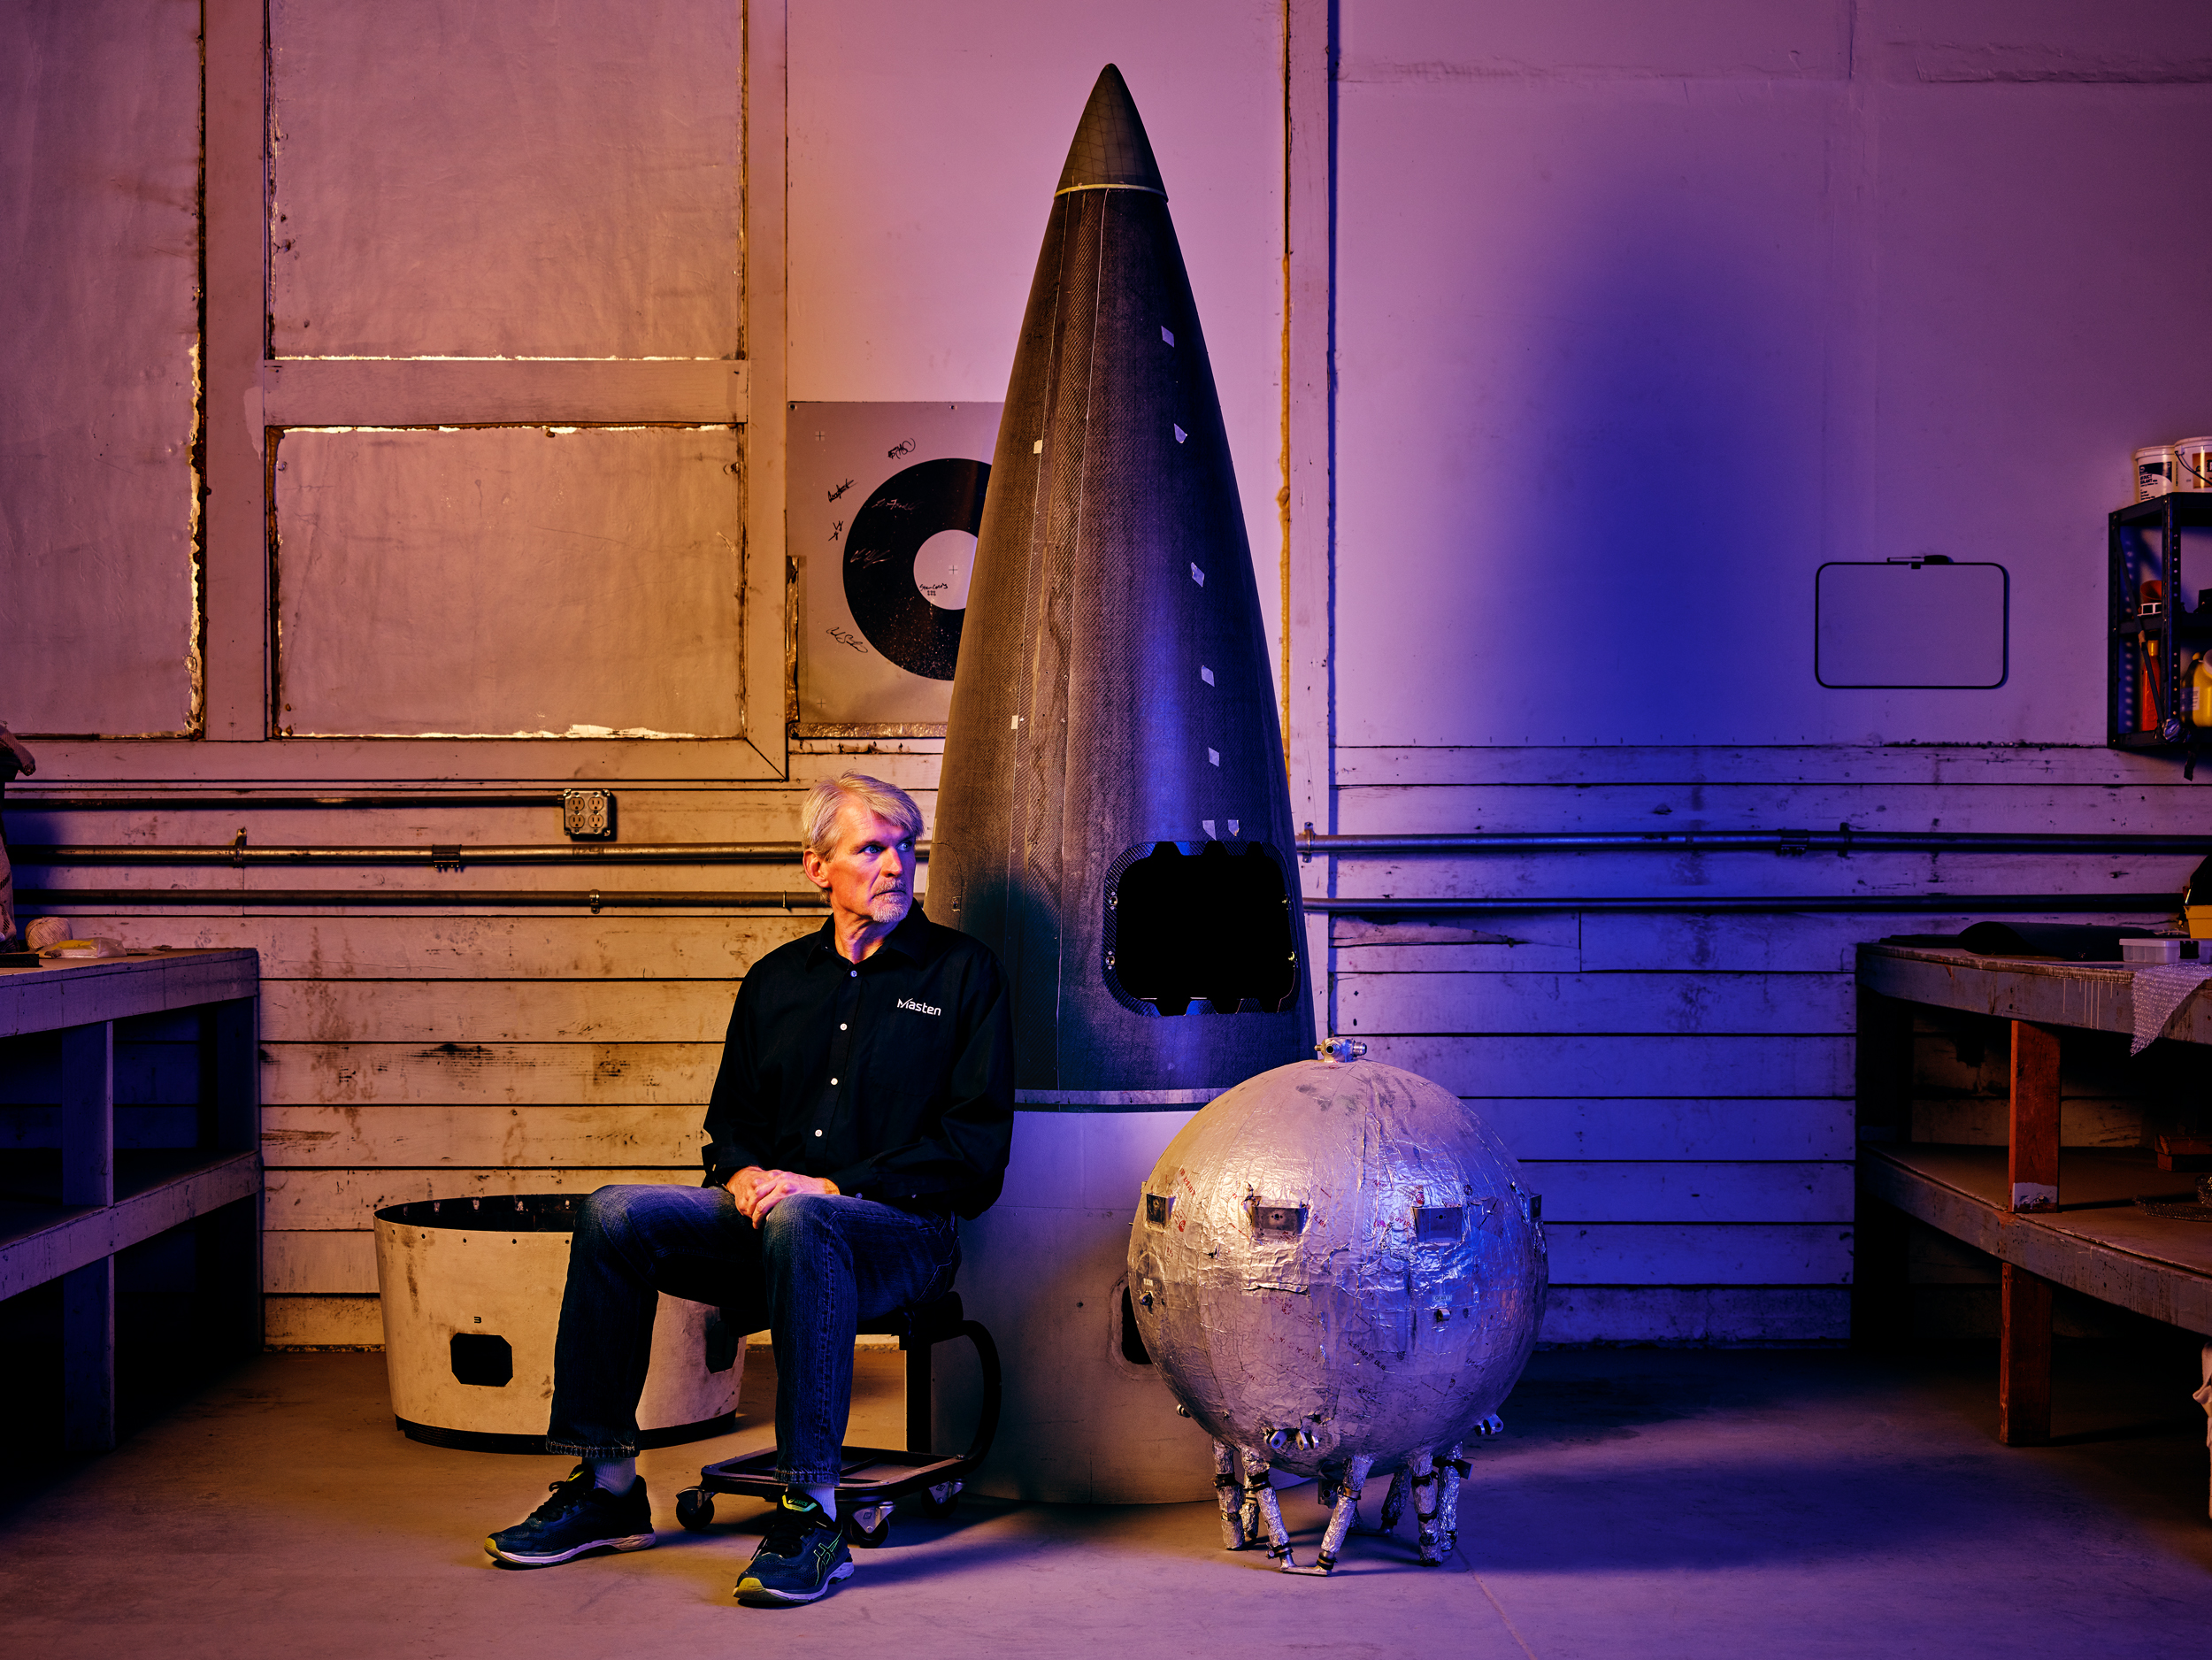 Dave Masten, founder and CTO of Masten Space Systems